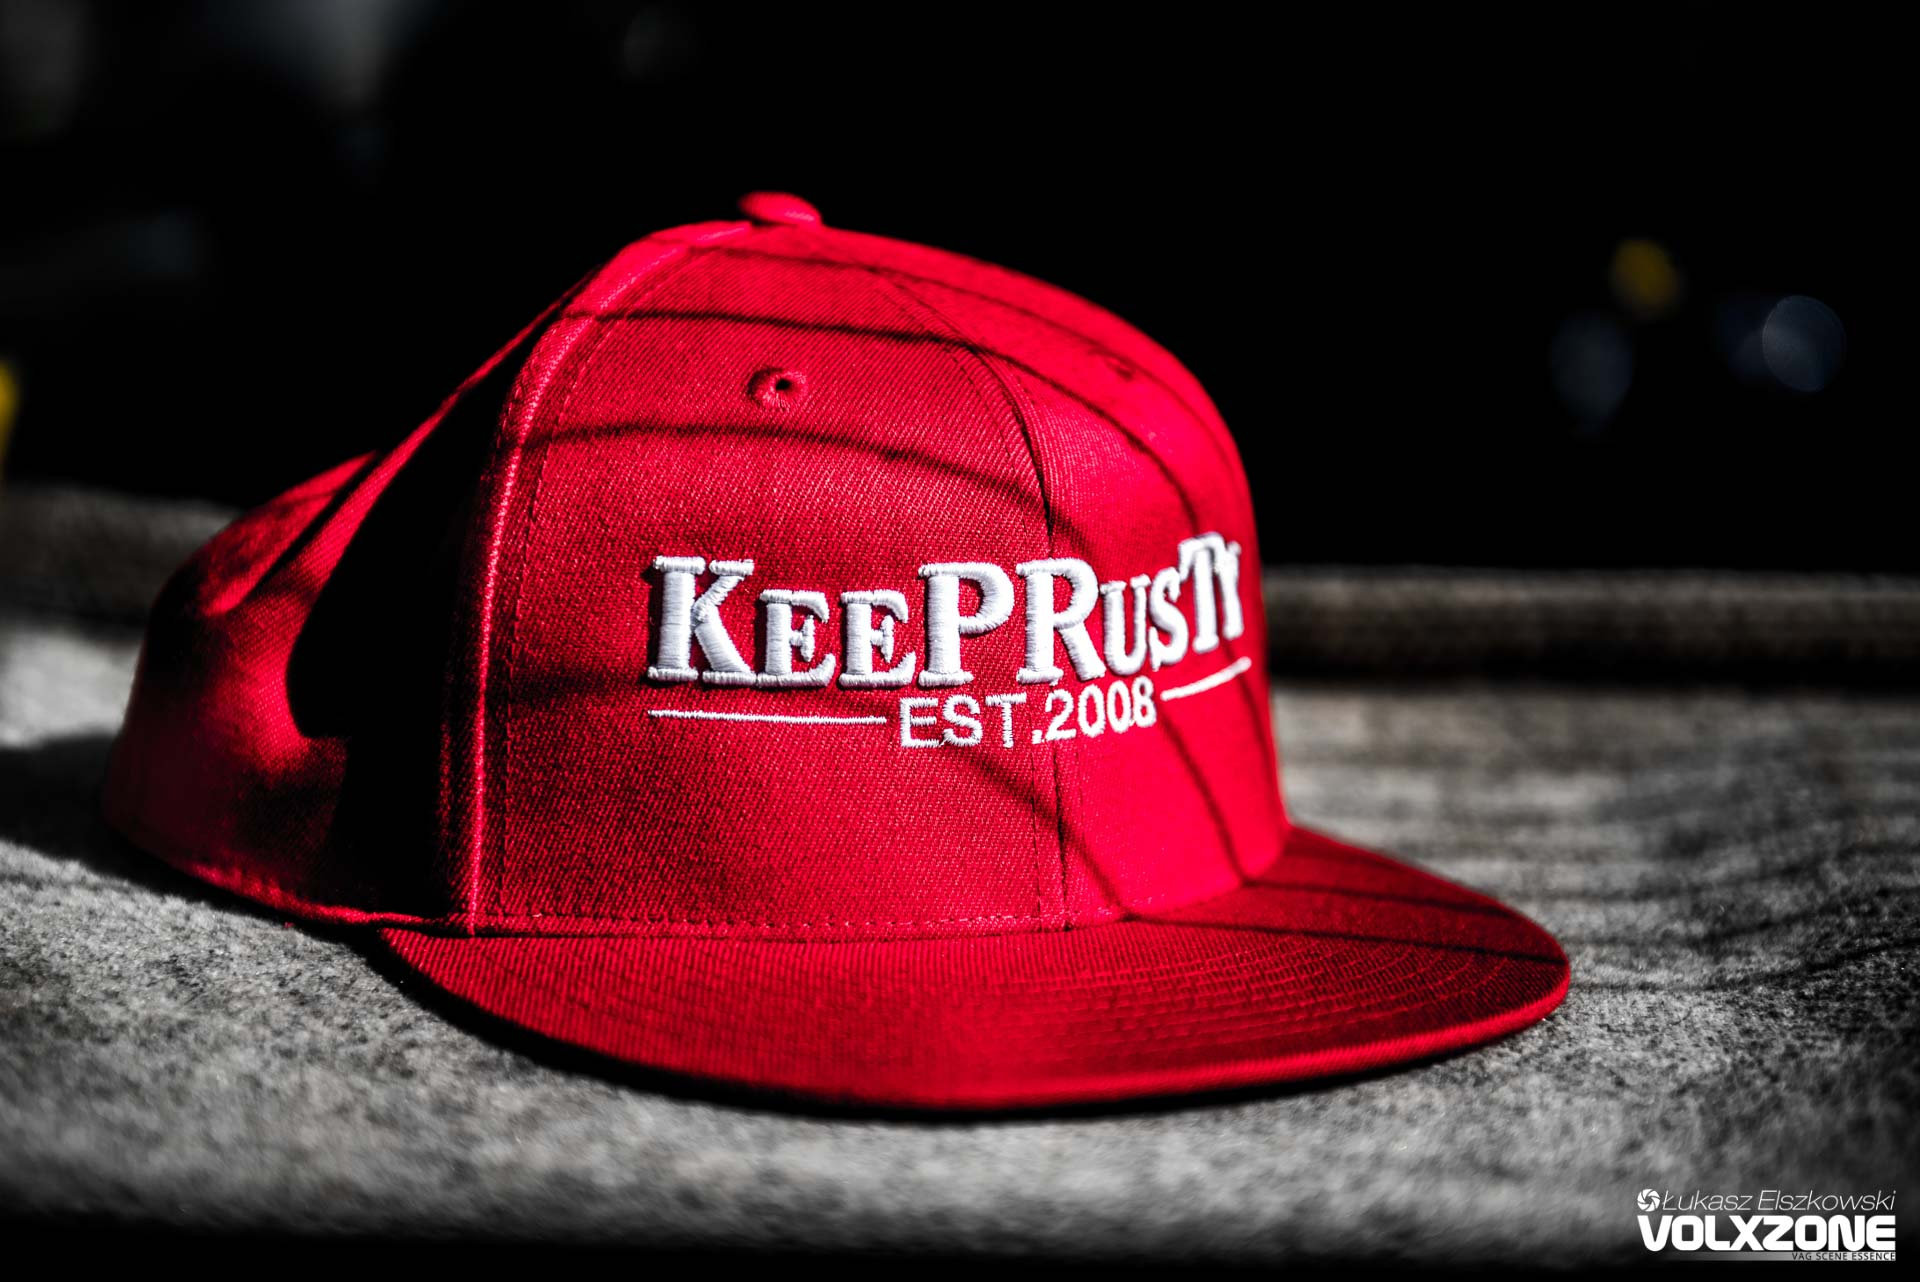 PROFIL: KeeP RusTy